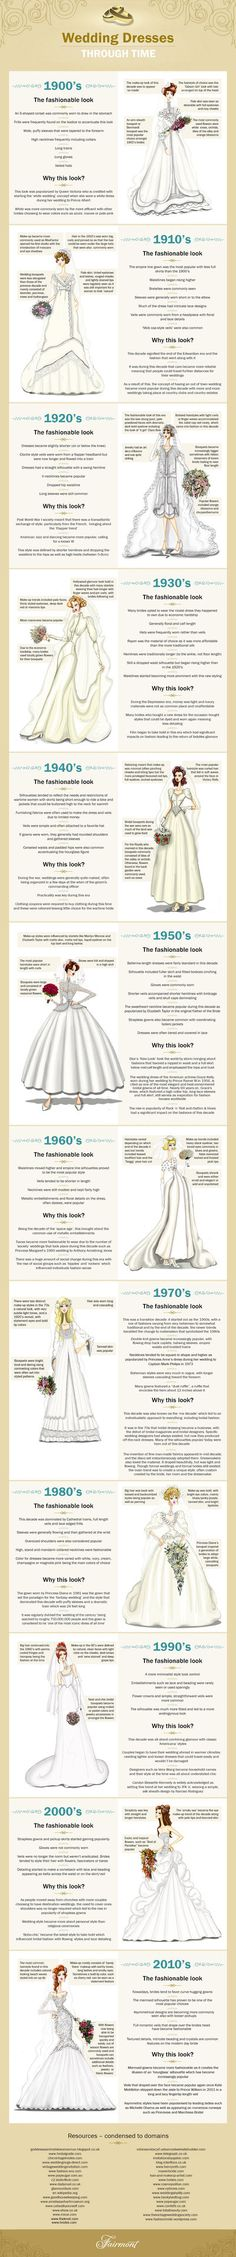 This Is How Wedding Dress Trends Have Changed Over The Last Century